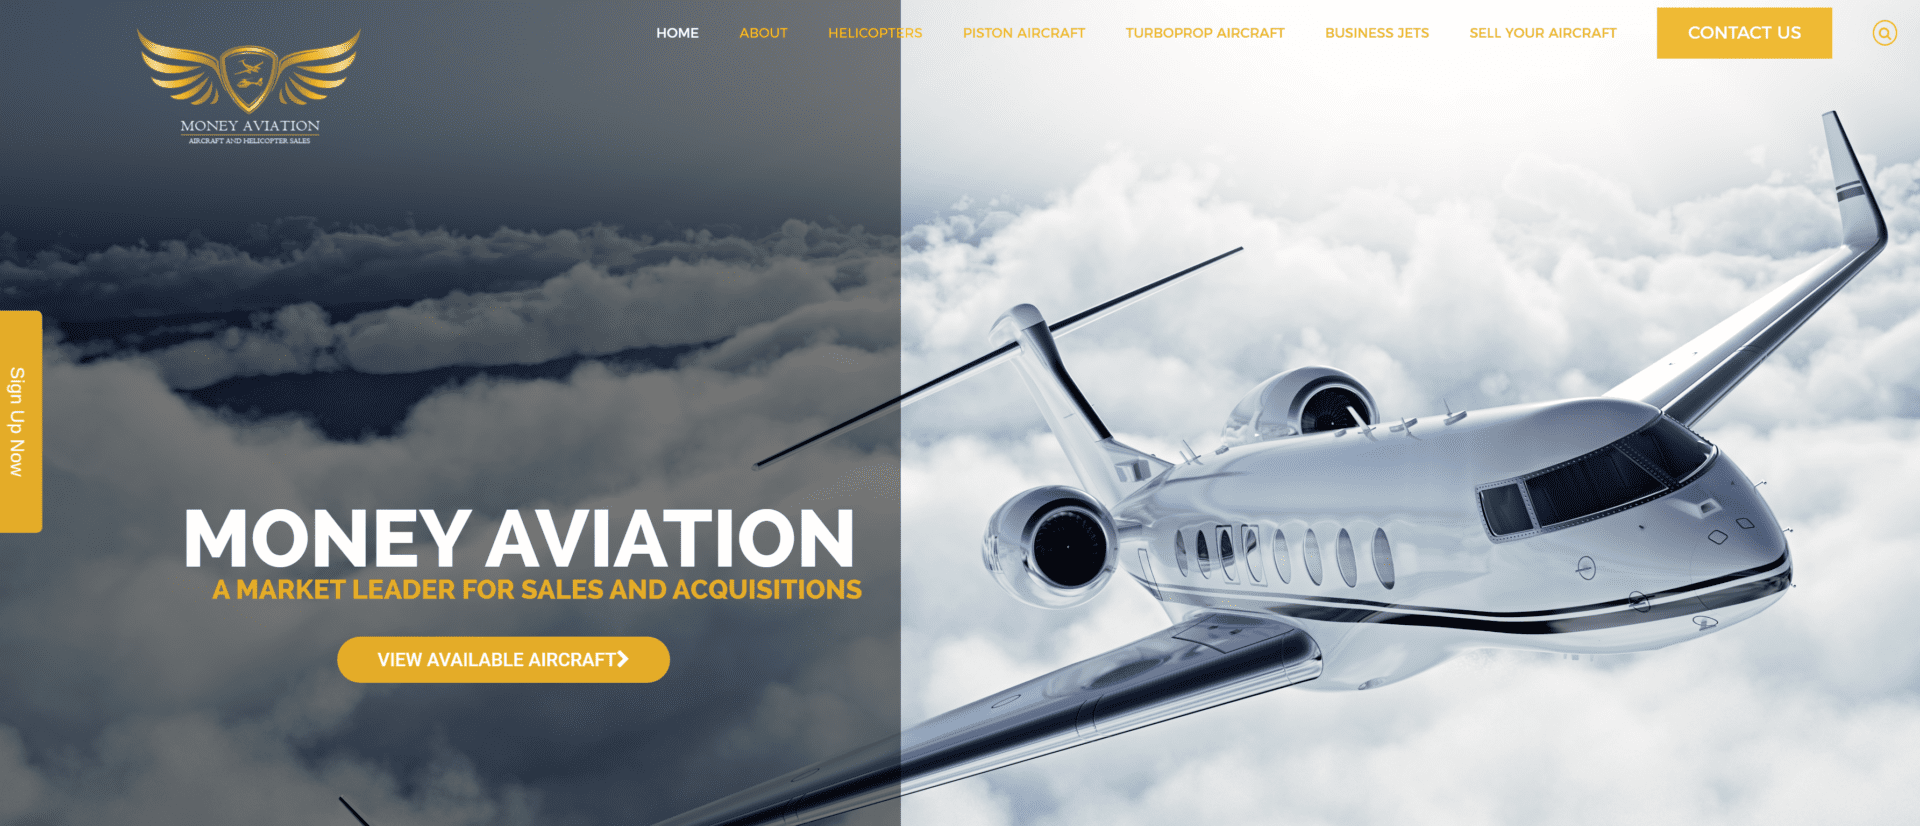 Money Aviation, AOM, Digital Marketing Agency, Recent Work